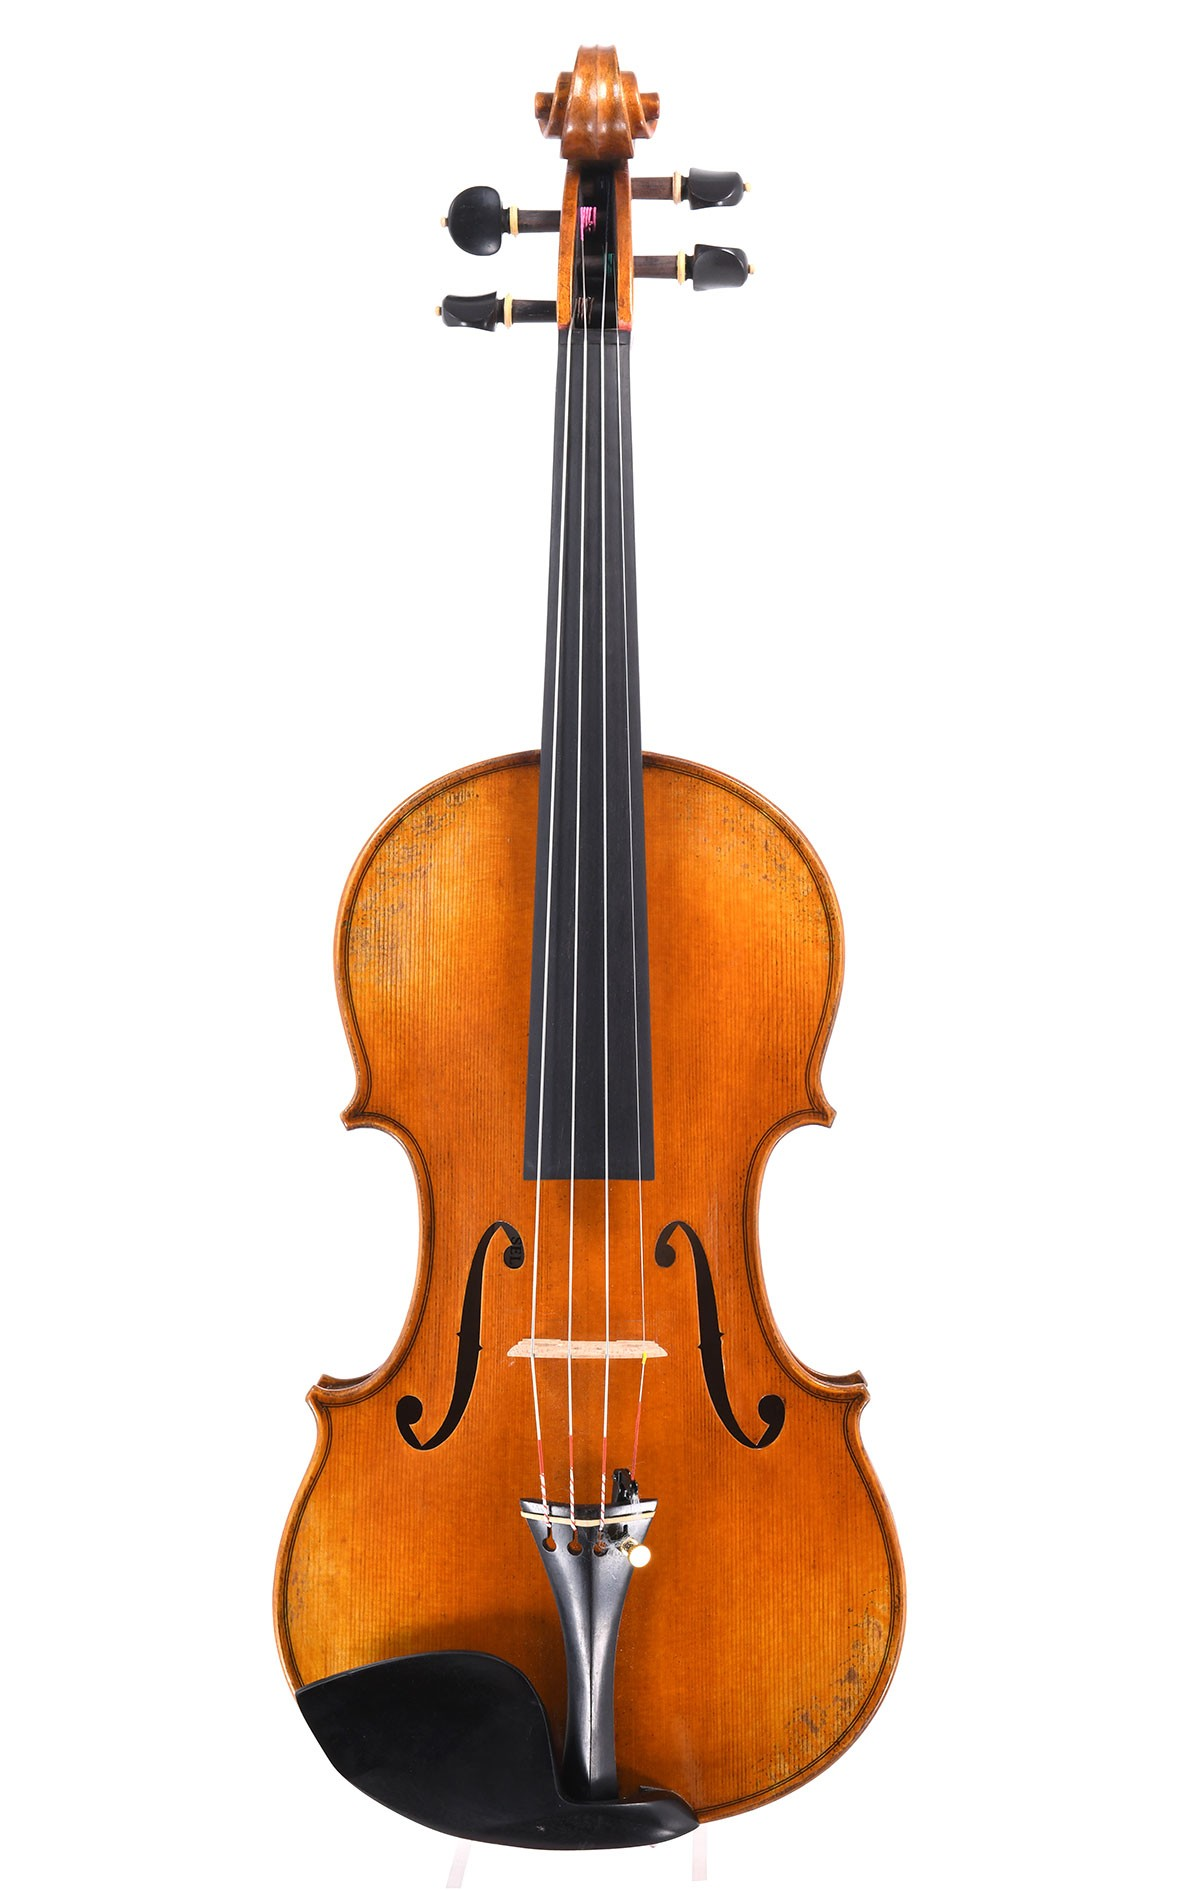 """CV Selectio"" violin Opus 15 no. 4: a powerful violin after Guarnerius"